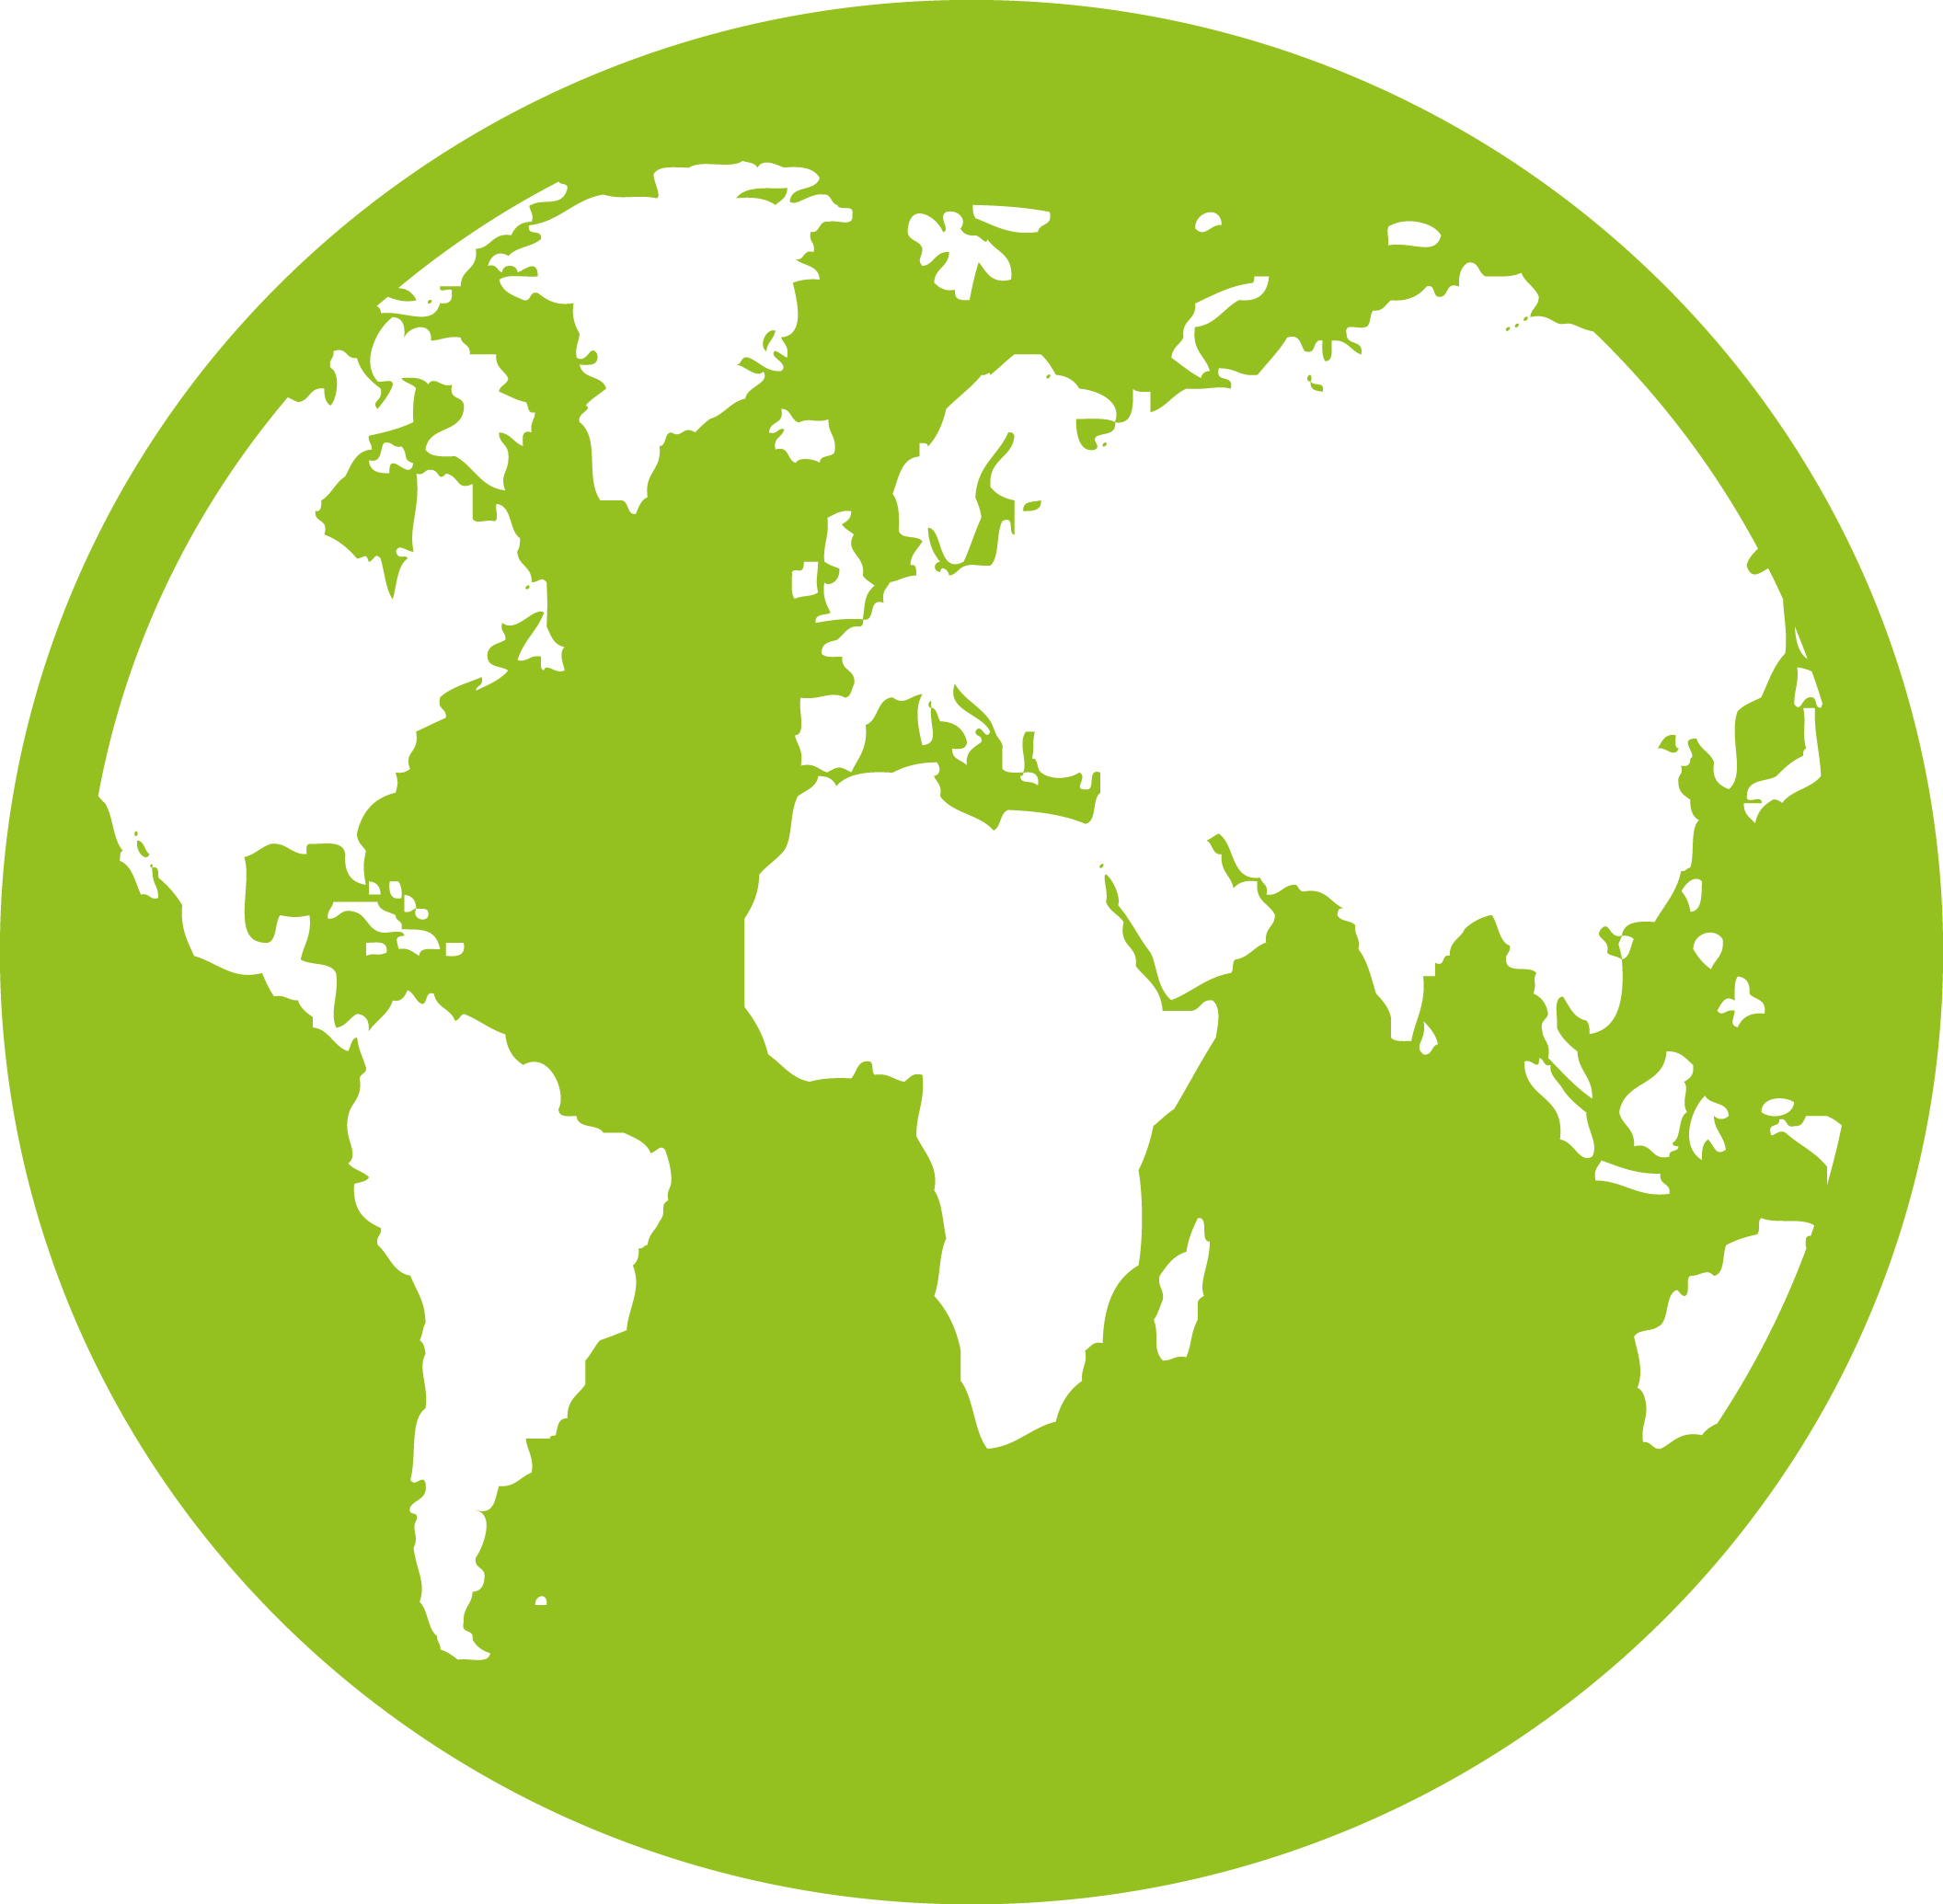 Download Earth Clipart HQ PNG Image.